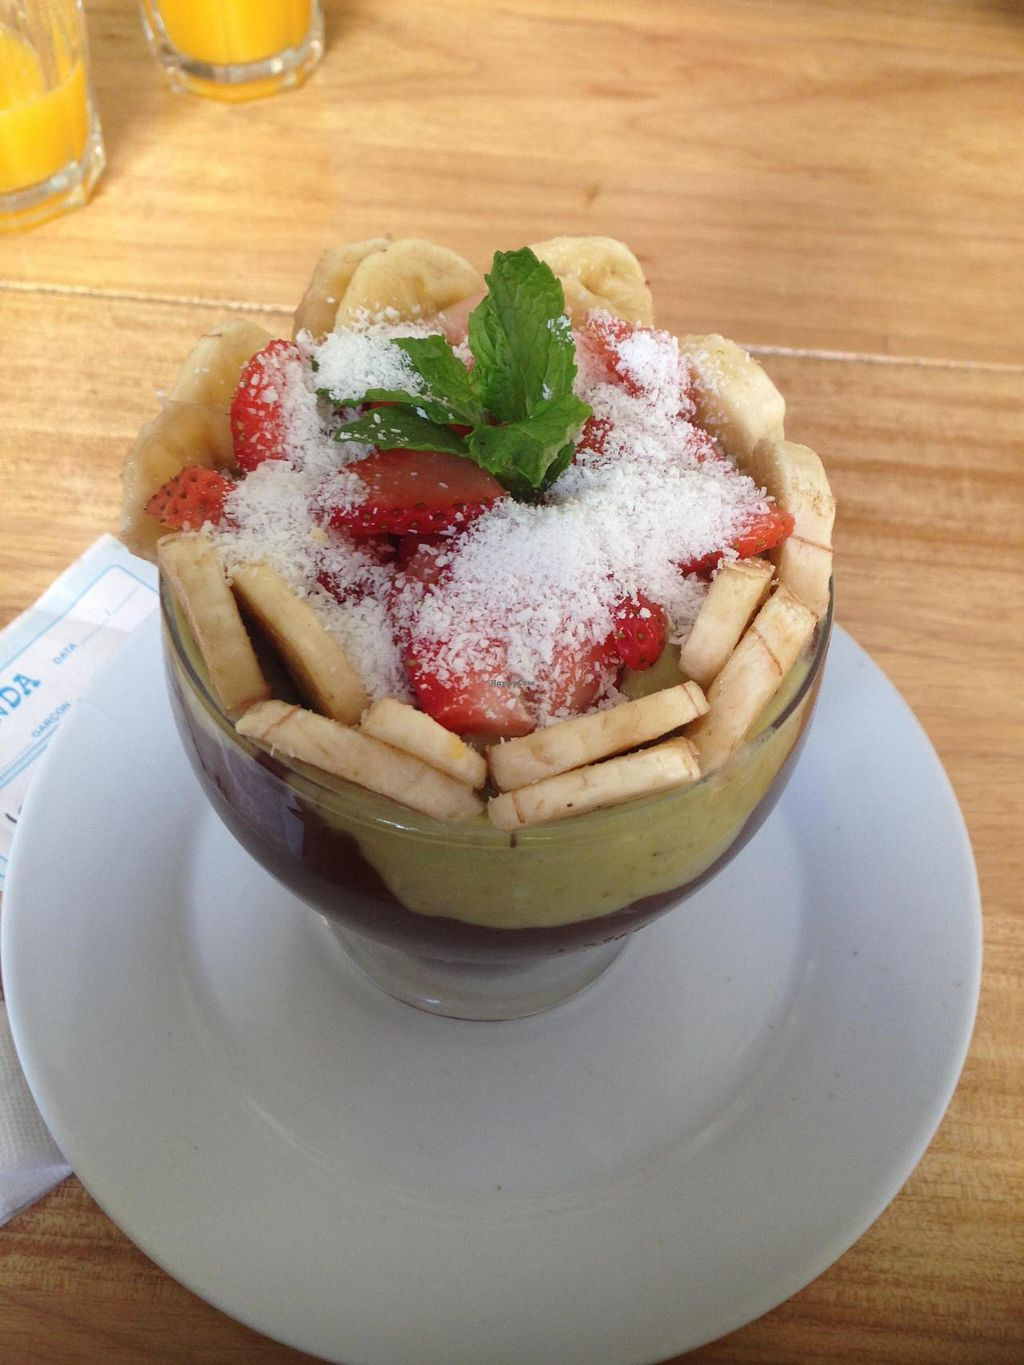 """Photo of Barao Natural - Baraozinho  by <a href=""""/members/profile/Paolla"""">Paolla</a> <br/>One of the options of desserts: fruit bowl with avocado cream and cocoa <br/> October 5, 2014  - <a href='/contact/abuse/image/51963/82224'>Report</a>"""